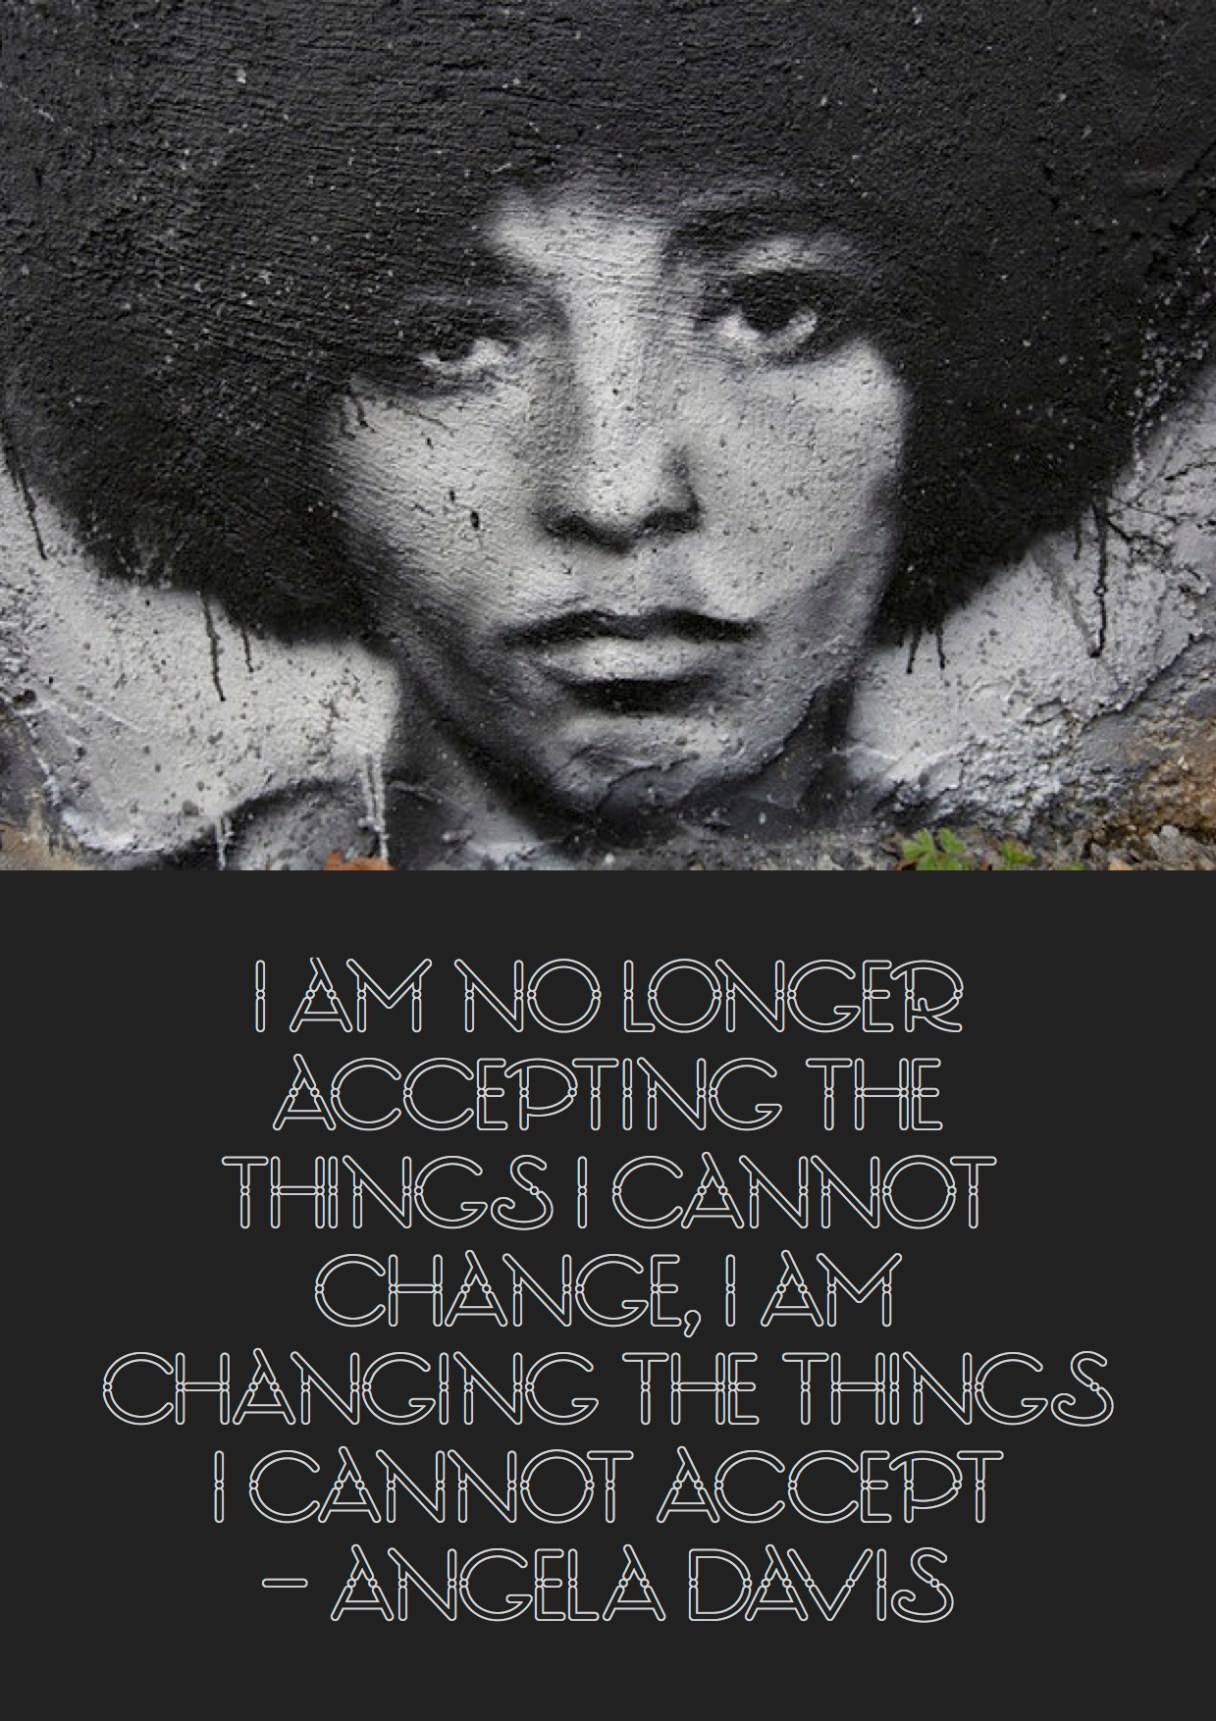 """Citat af Angela Davis: """"I am no longer accepting the things I cannot change, I am changing the things I cannot accept."""" Originalfoto: Thierry Ehrman (fra flickr.com). Citatillustration: Maria Busch"""